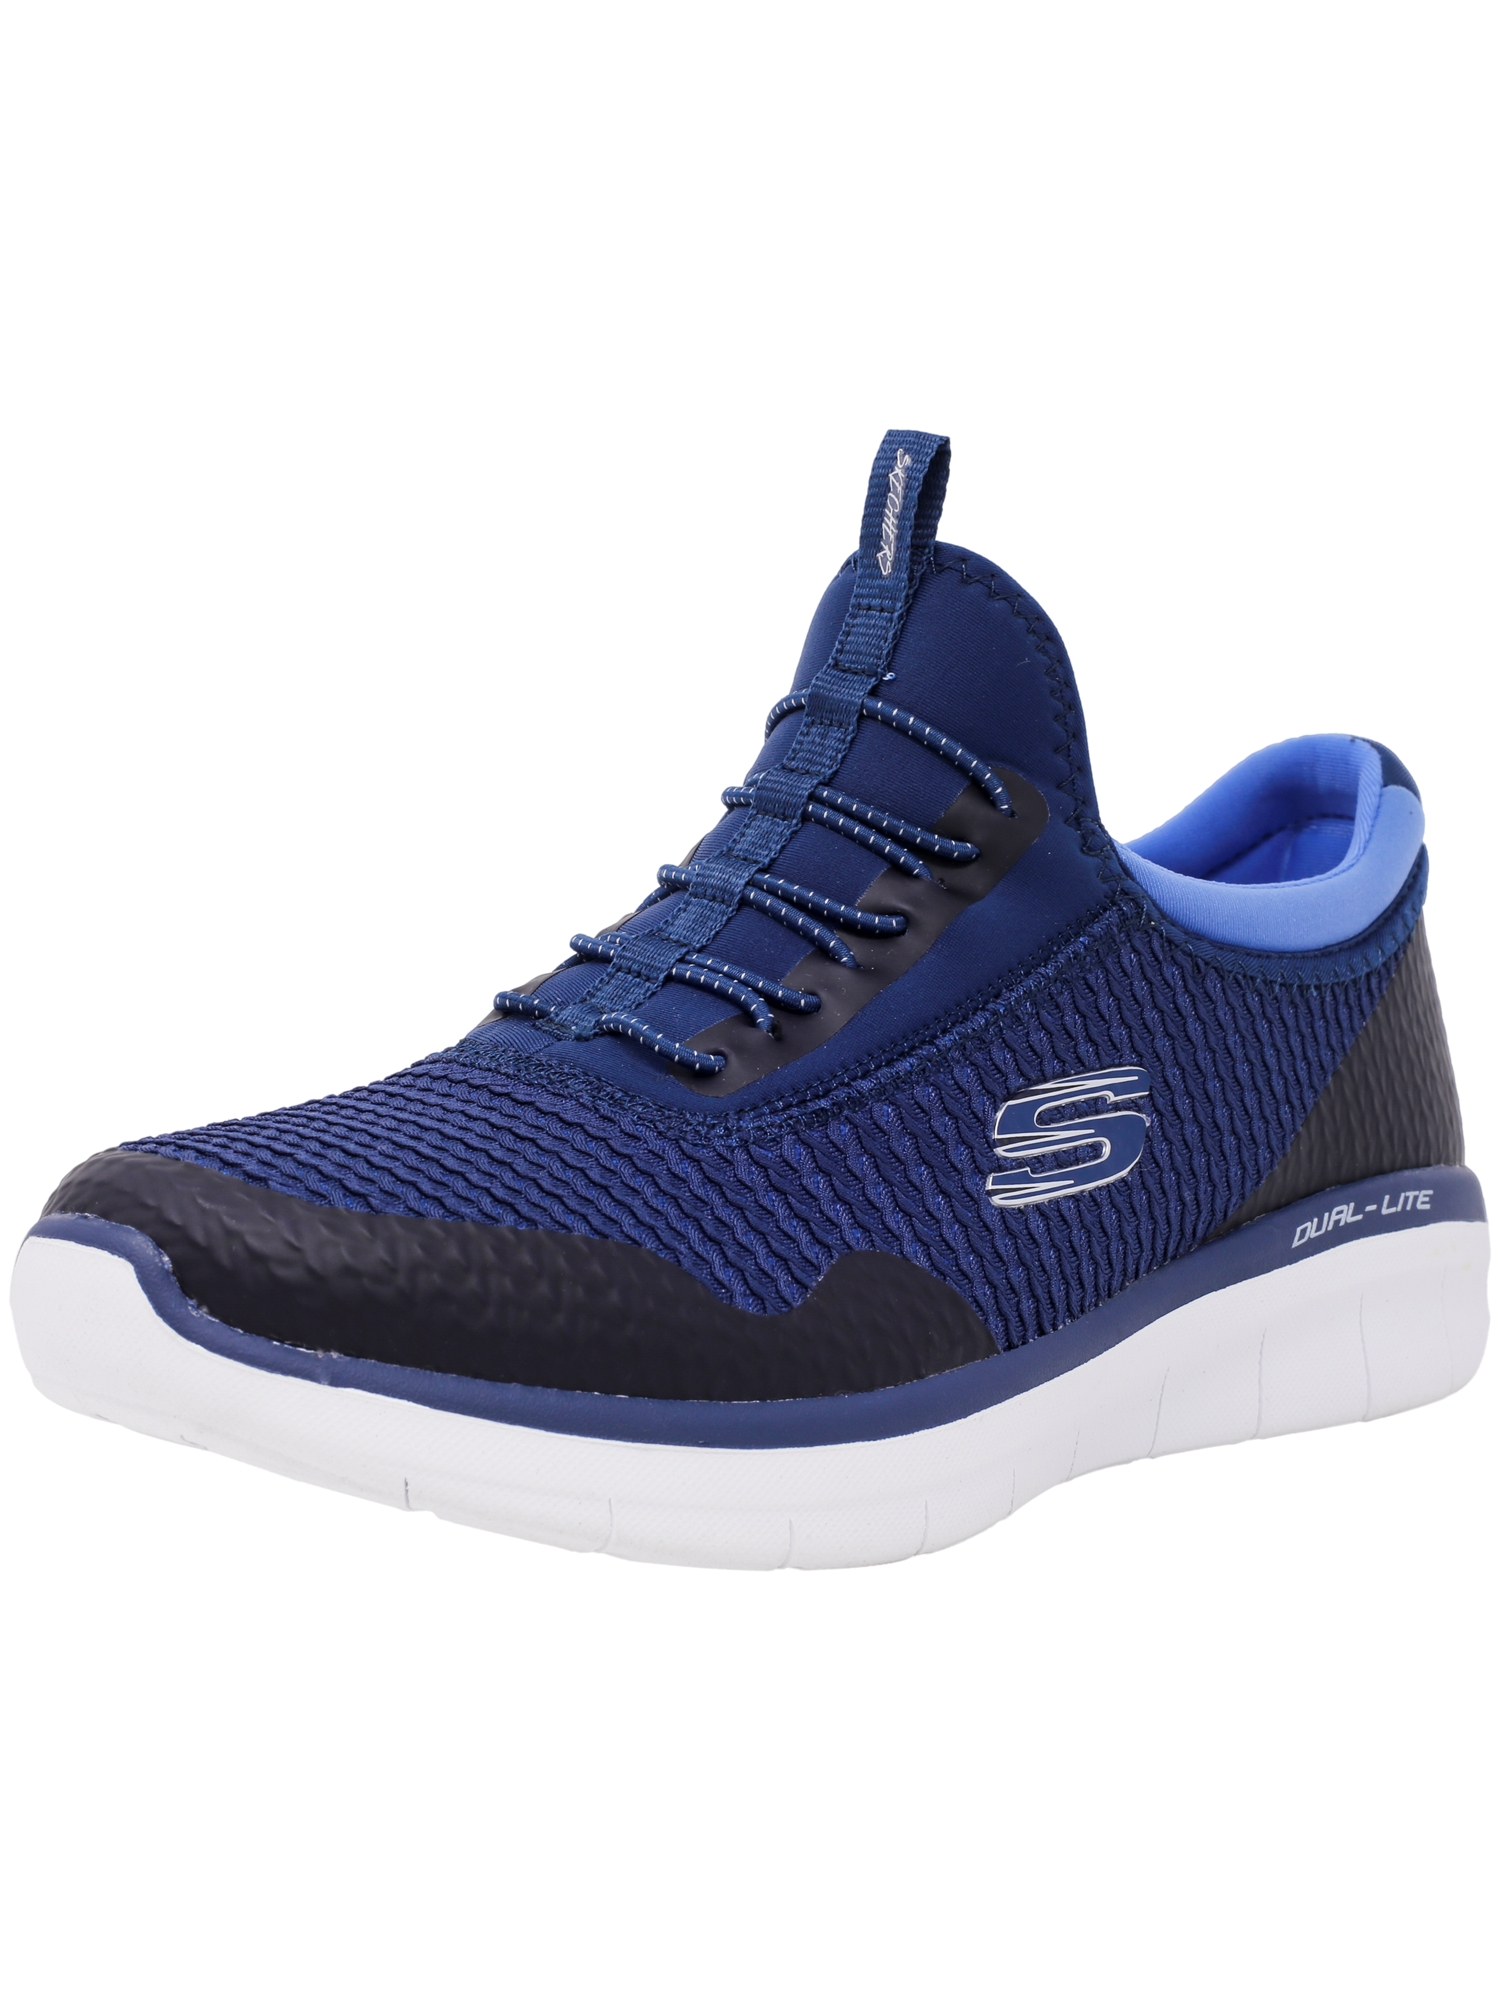 Skechers Women's Synergy 2.0 - Mirror Image Navy / Blue Ankle-High Training Shoes 10M